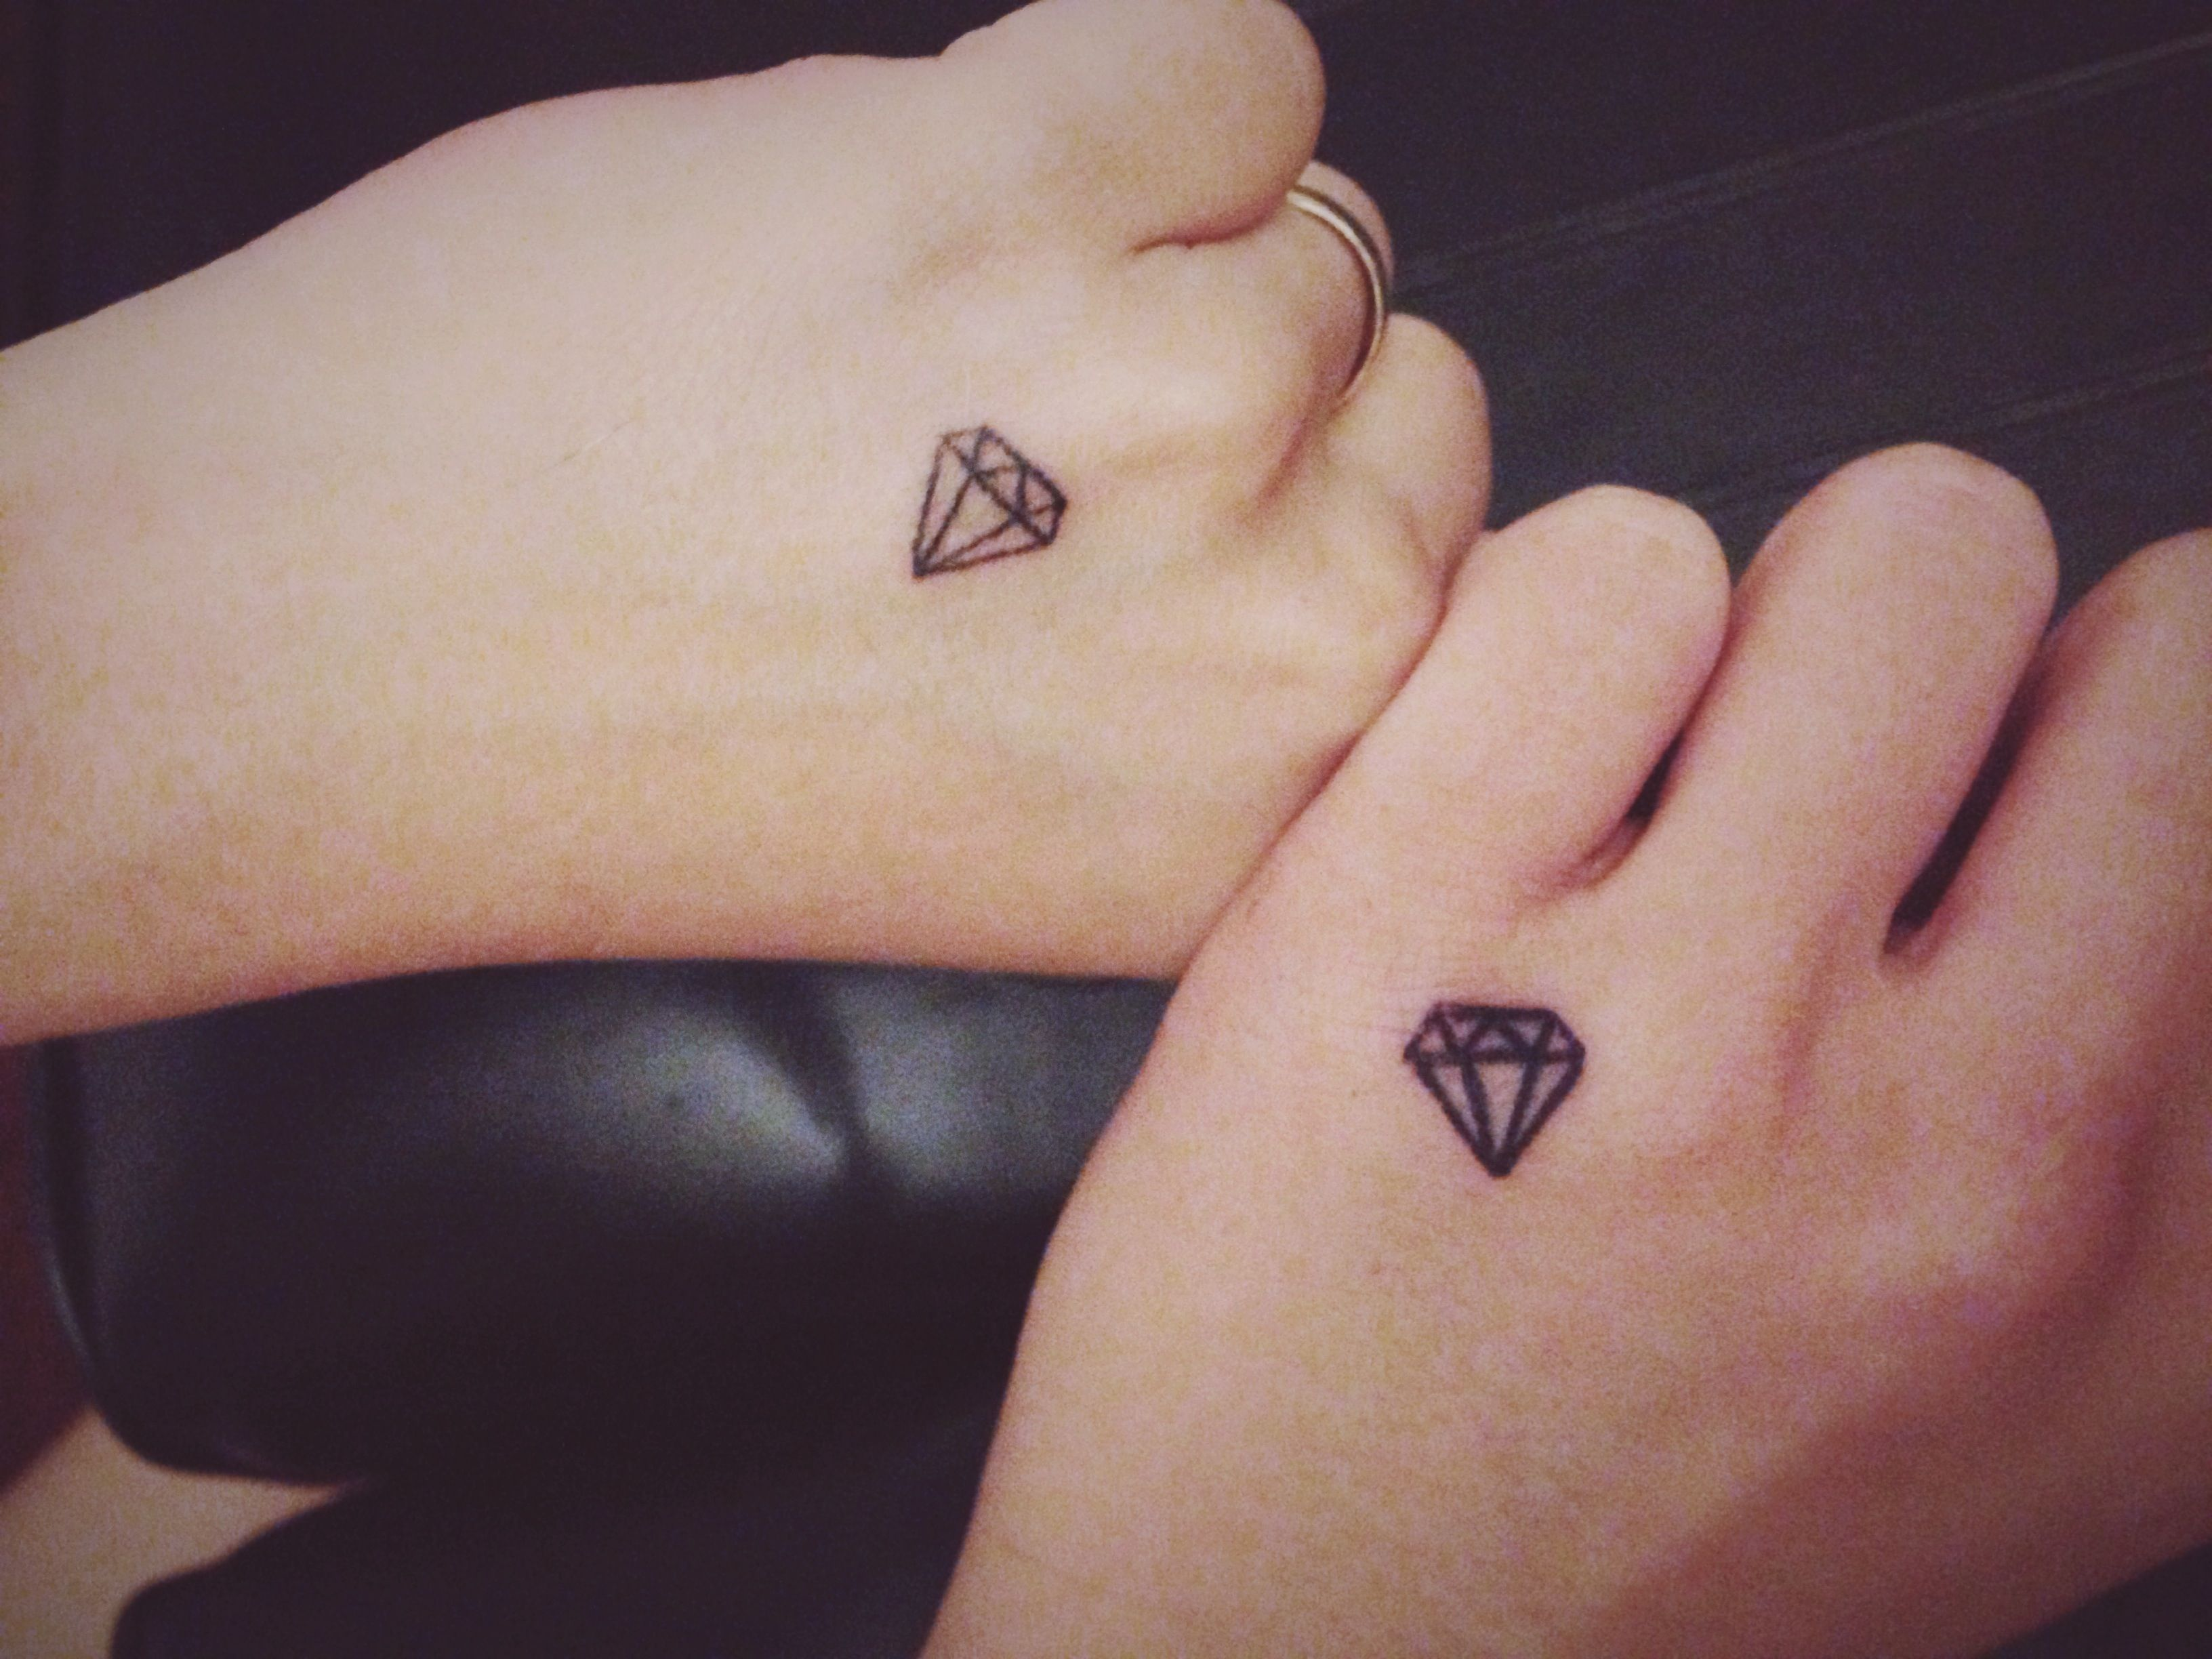 Pin By Bitna Kim On Like You Don T Care Friend Tattoos Hand Tattoos Couples Hand Tattoos